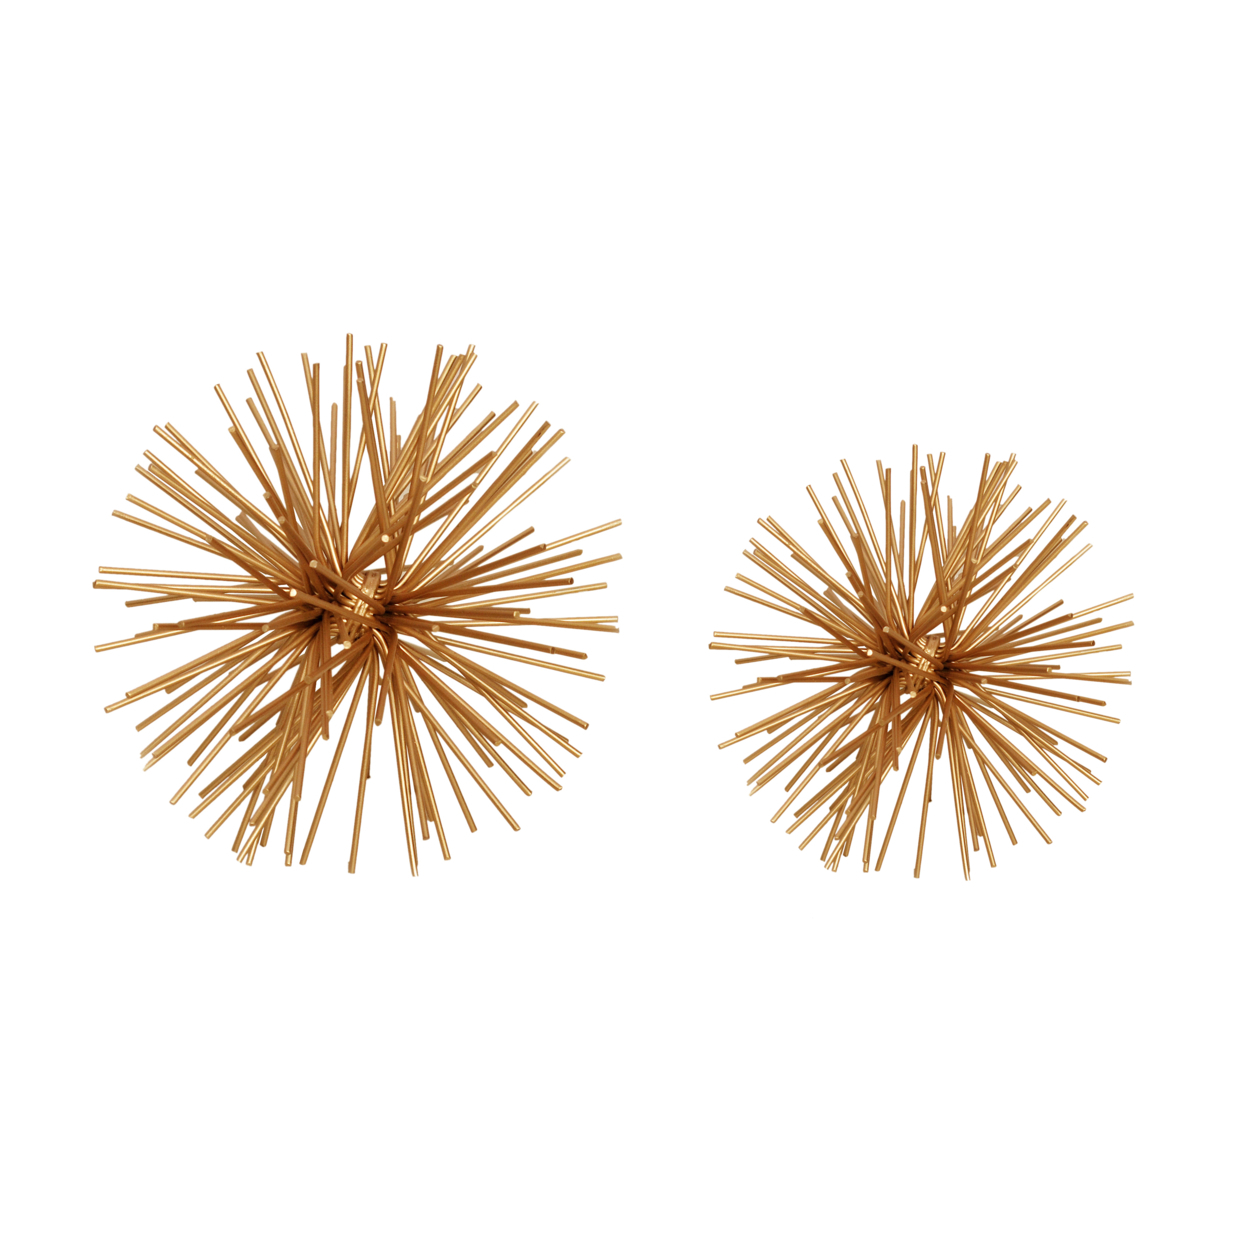 Spikes Ball Gold SET OF TWO 58d1b8f22a00e44d50762abc